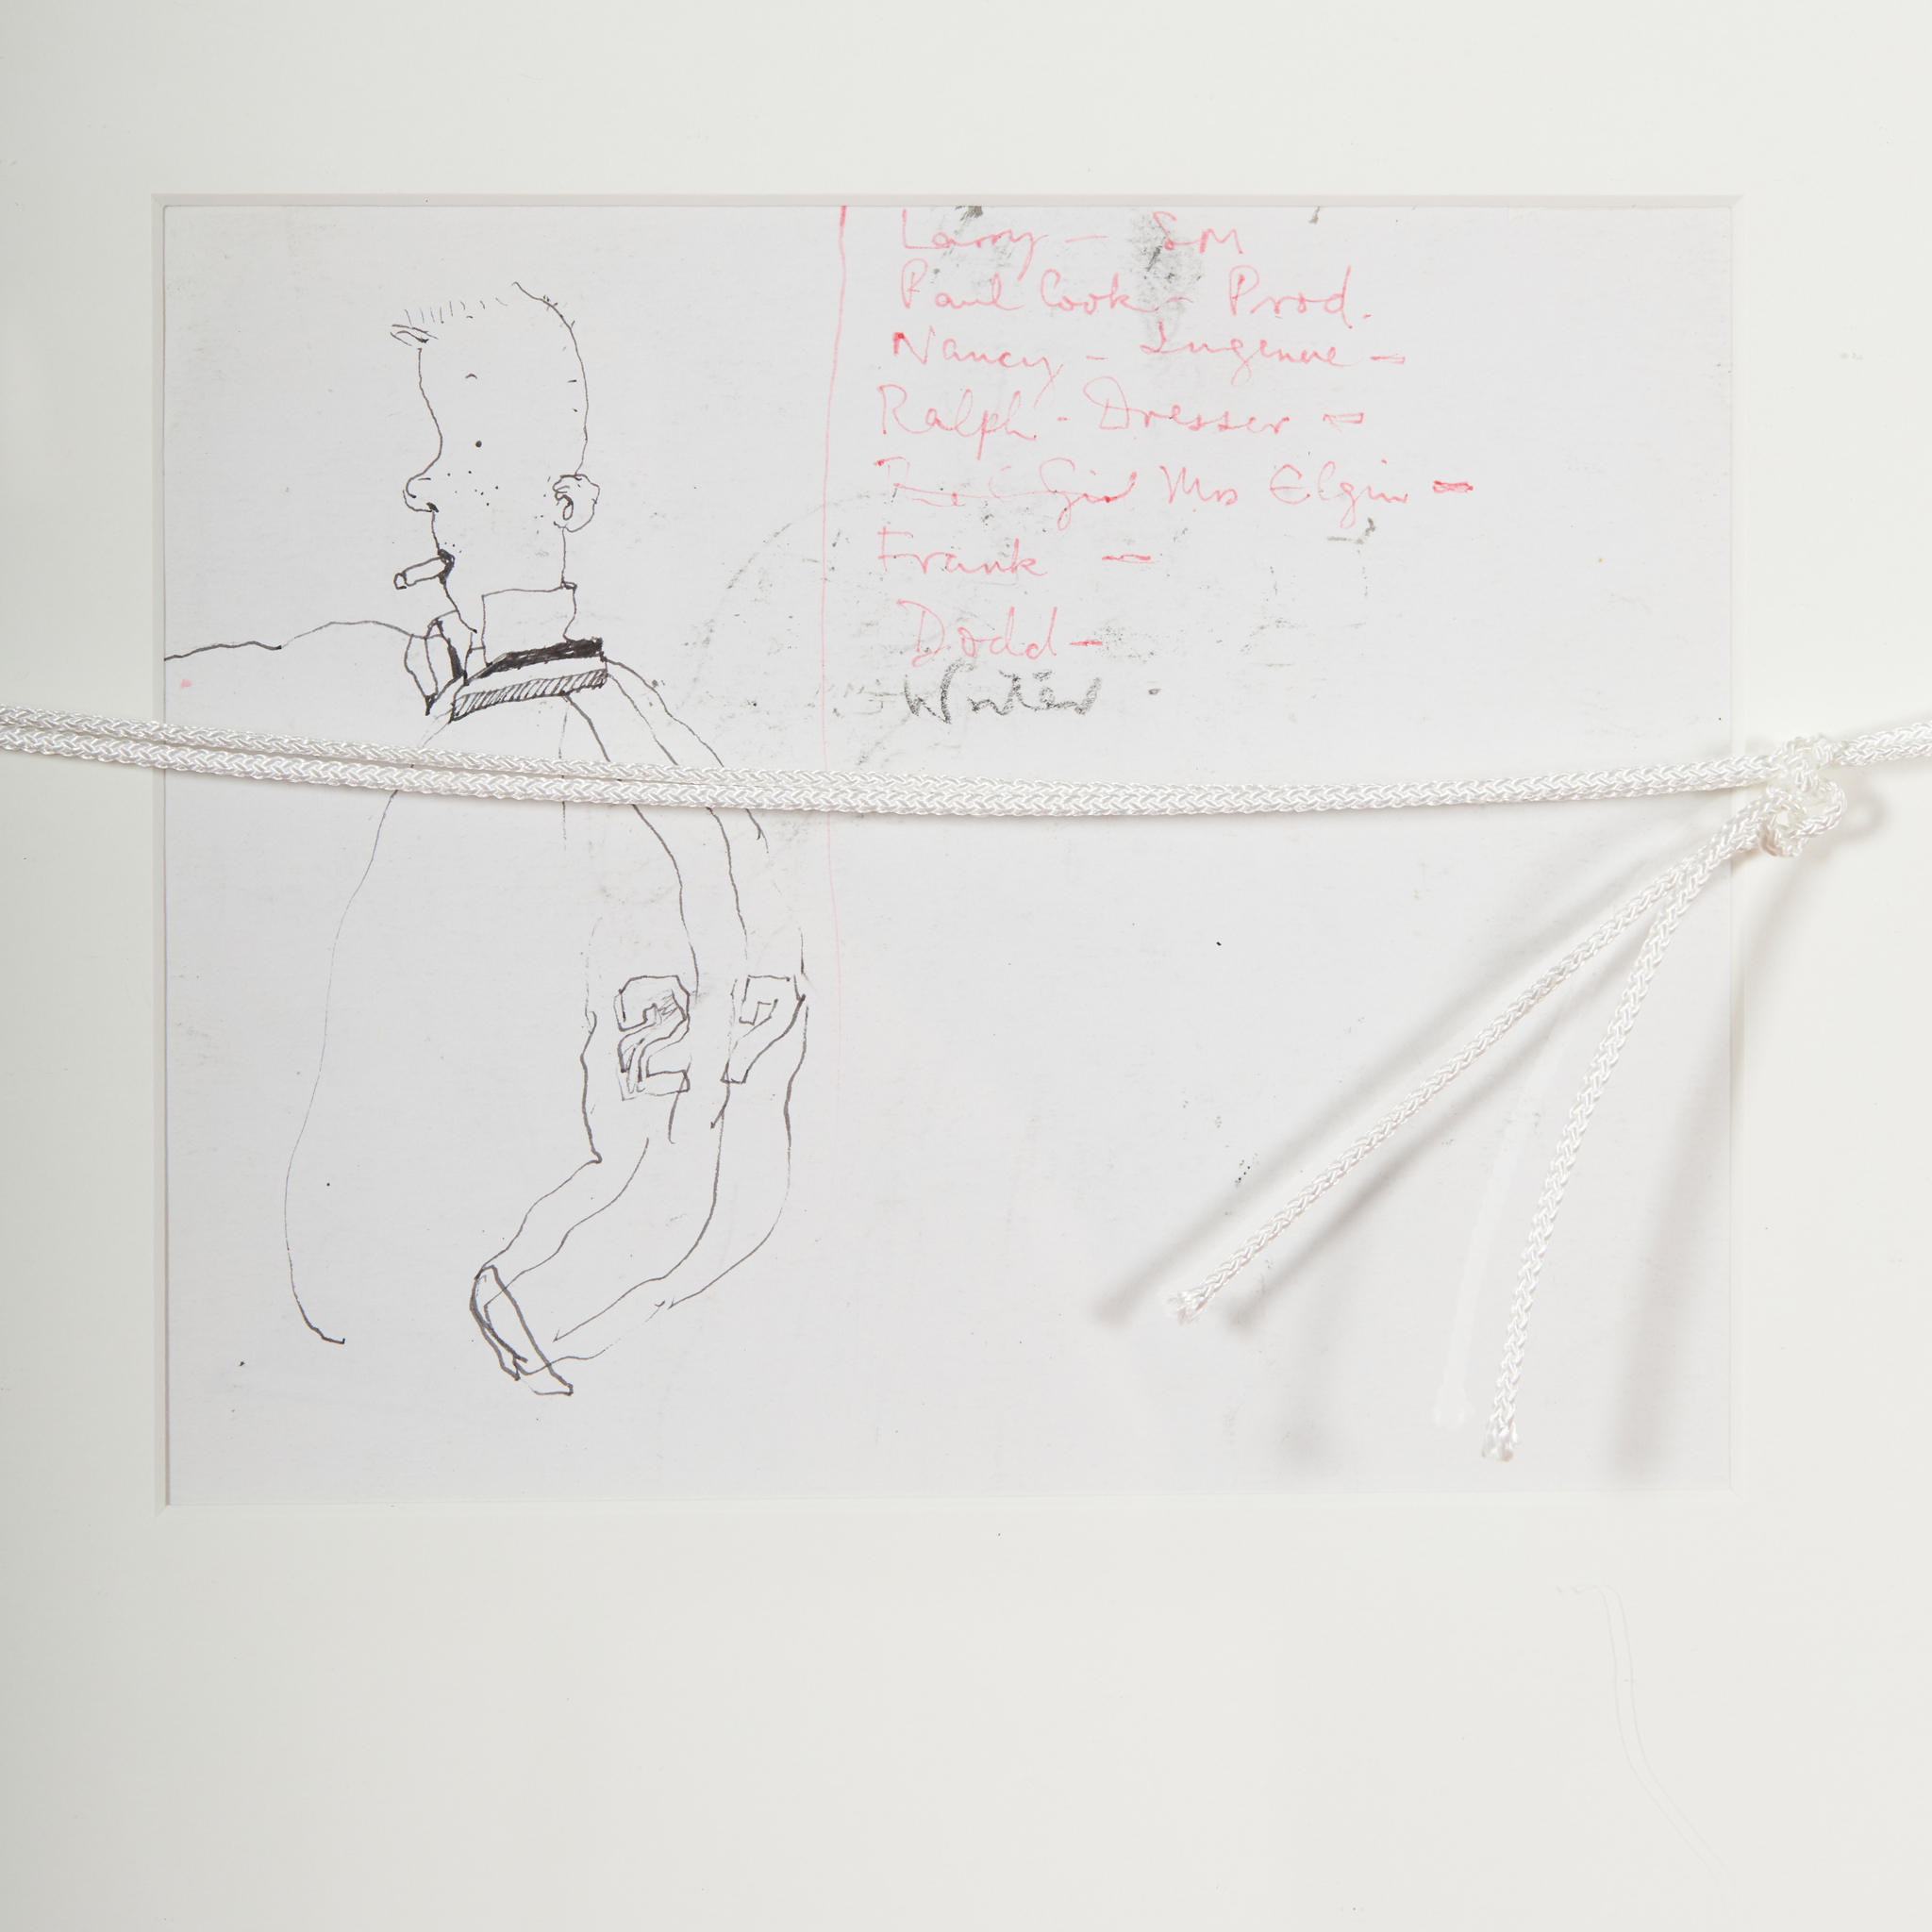 """§ JOHN BYRNE (SCOTTISH 1940-) SKETCHES FROM """"THE COUNTRY GIRL"""" - Image 3 of 7"""